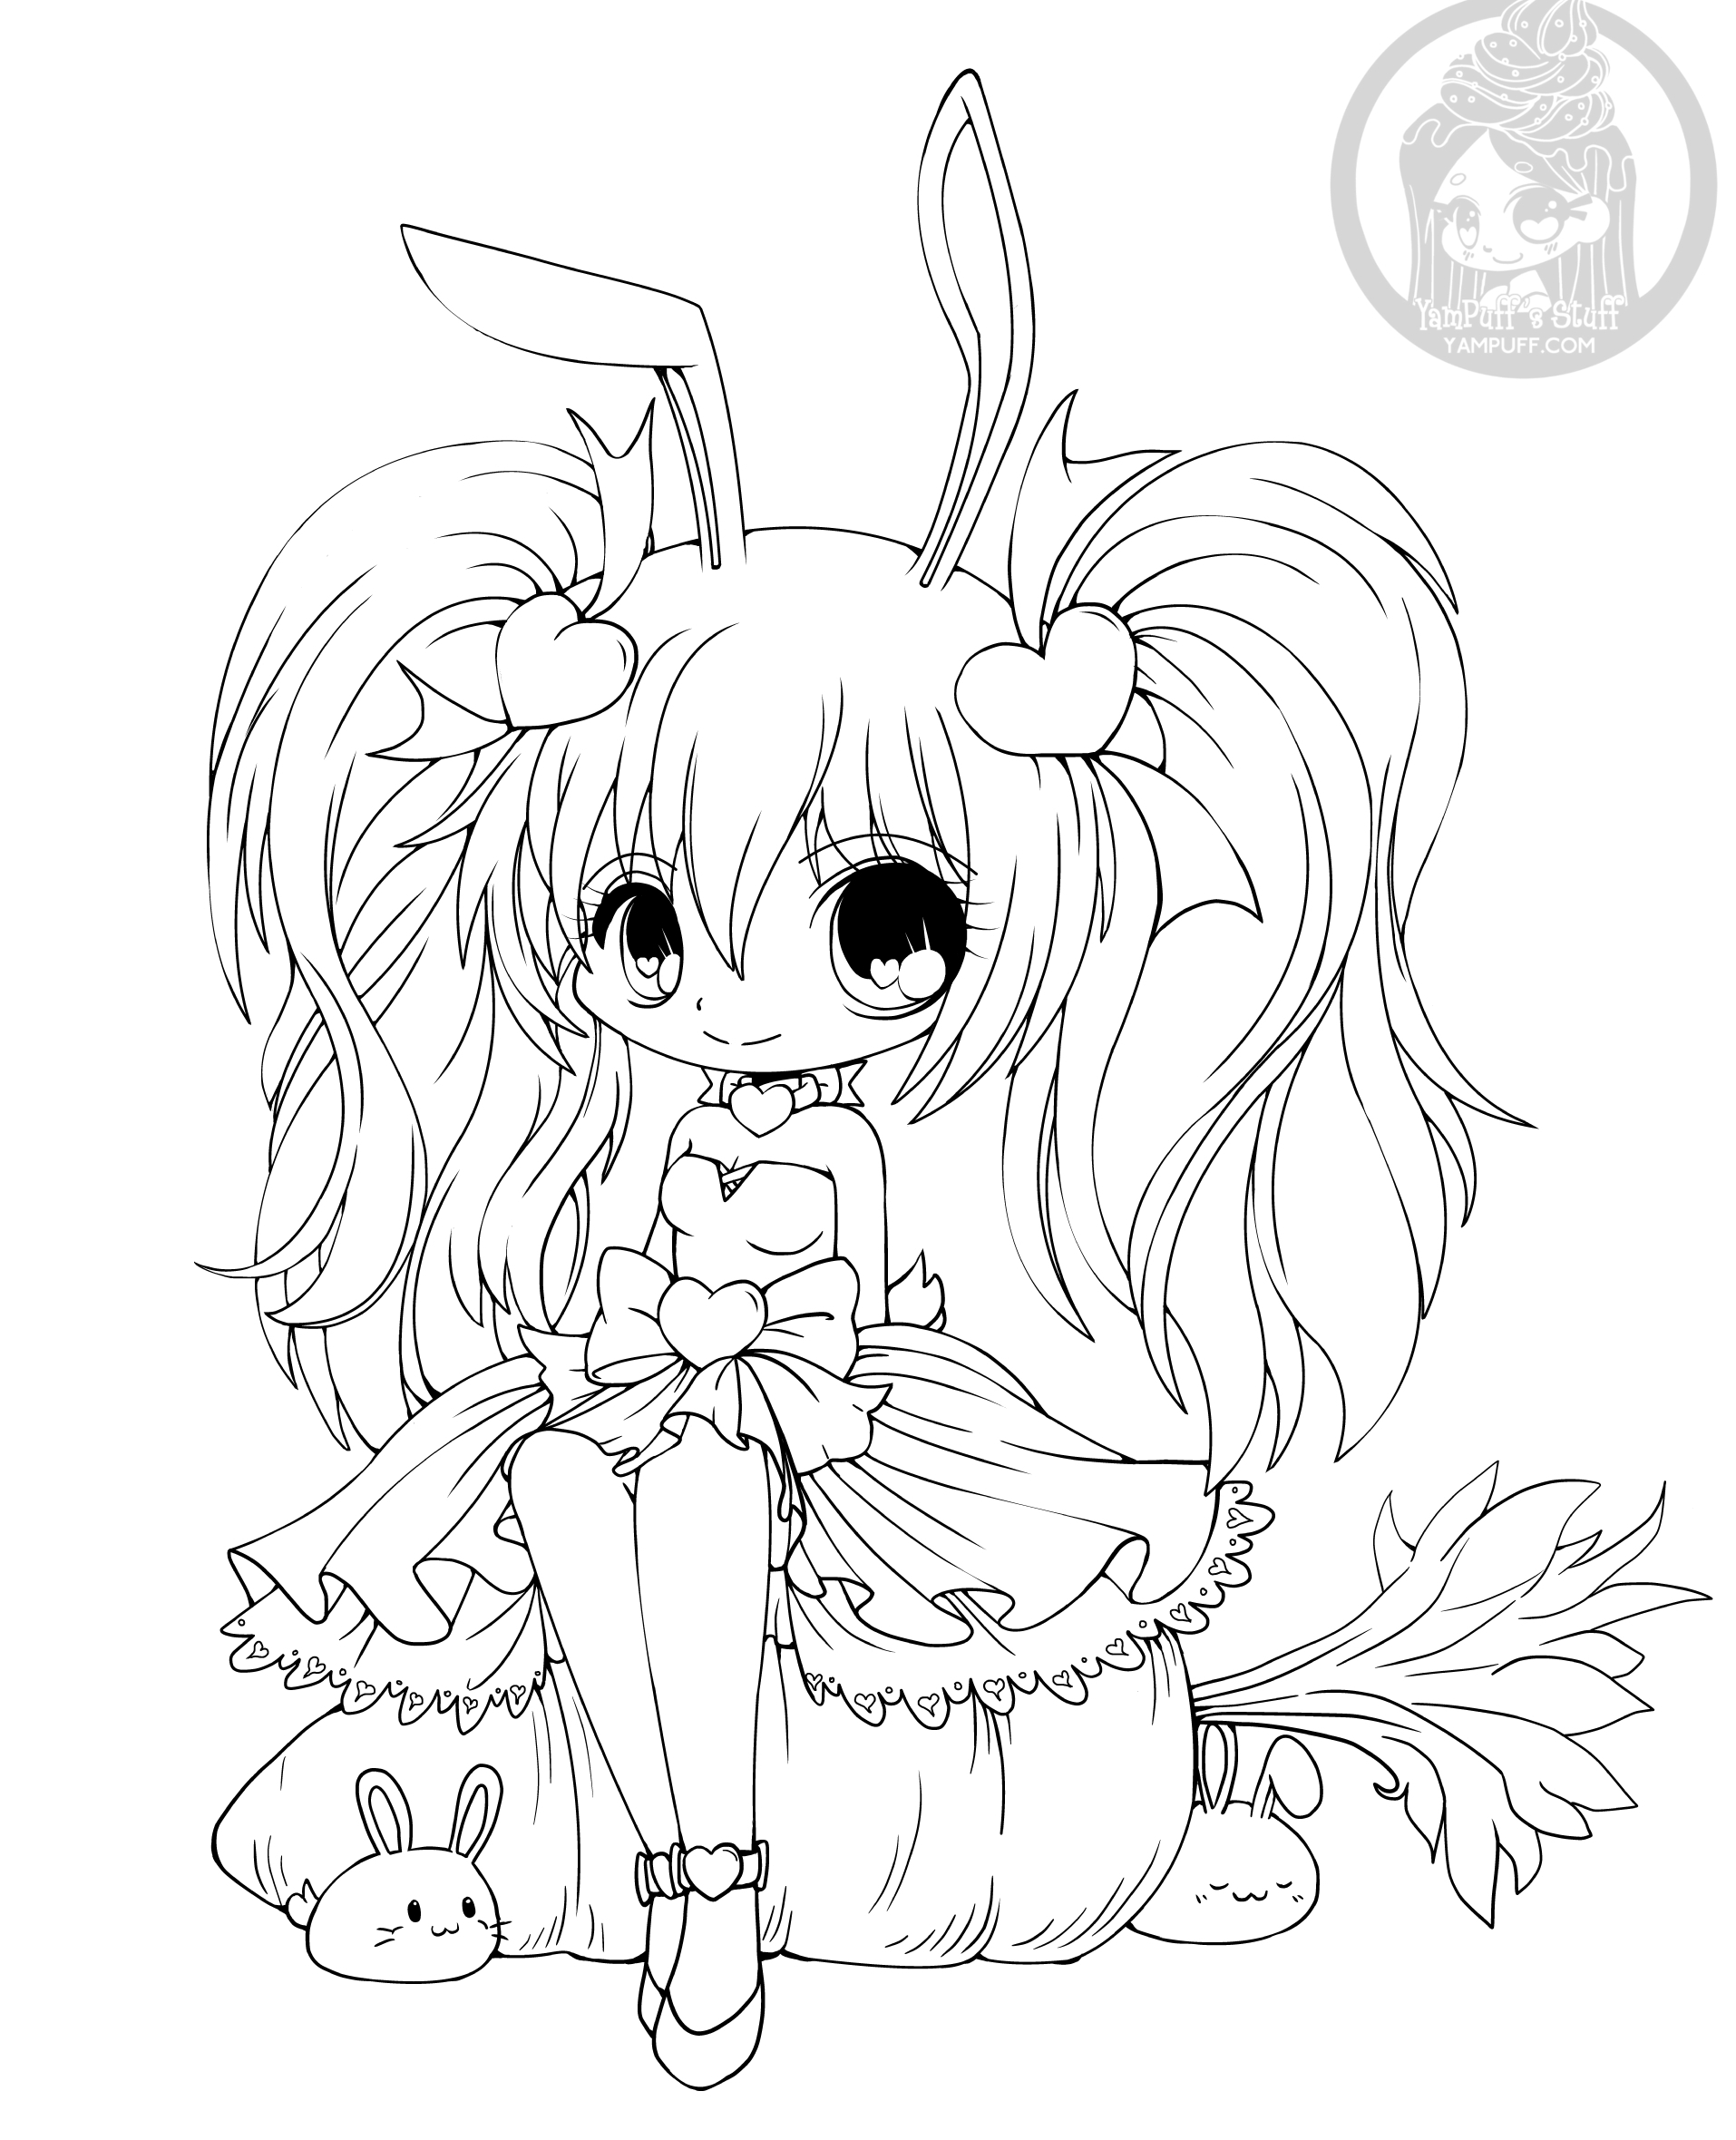 cute chibi girl coloring pages 28 collection of kawaii wolf girl coloring pages high pages girl cute chibi coloring